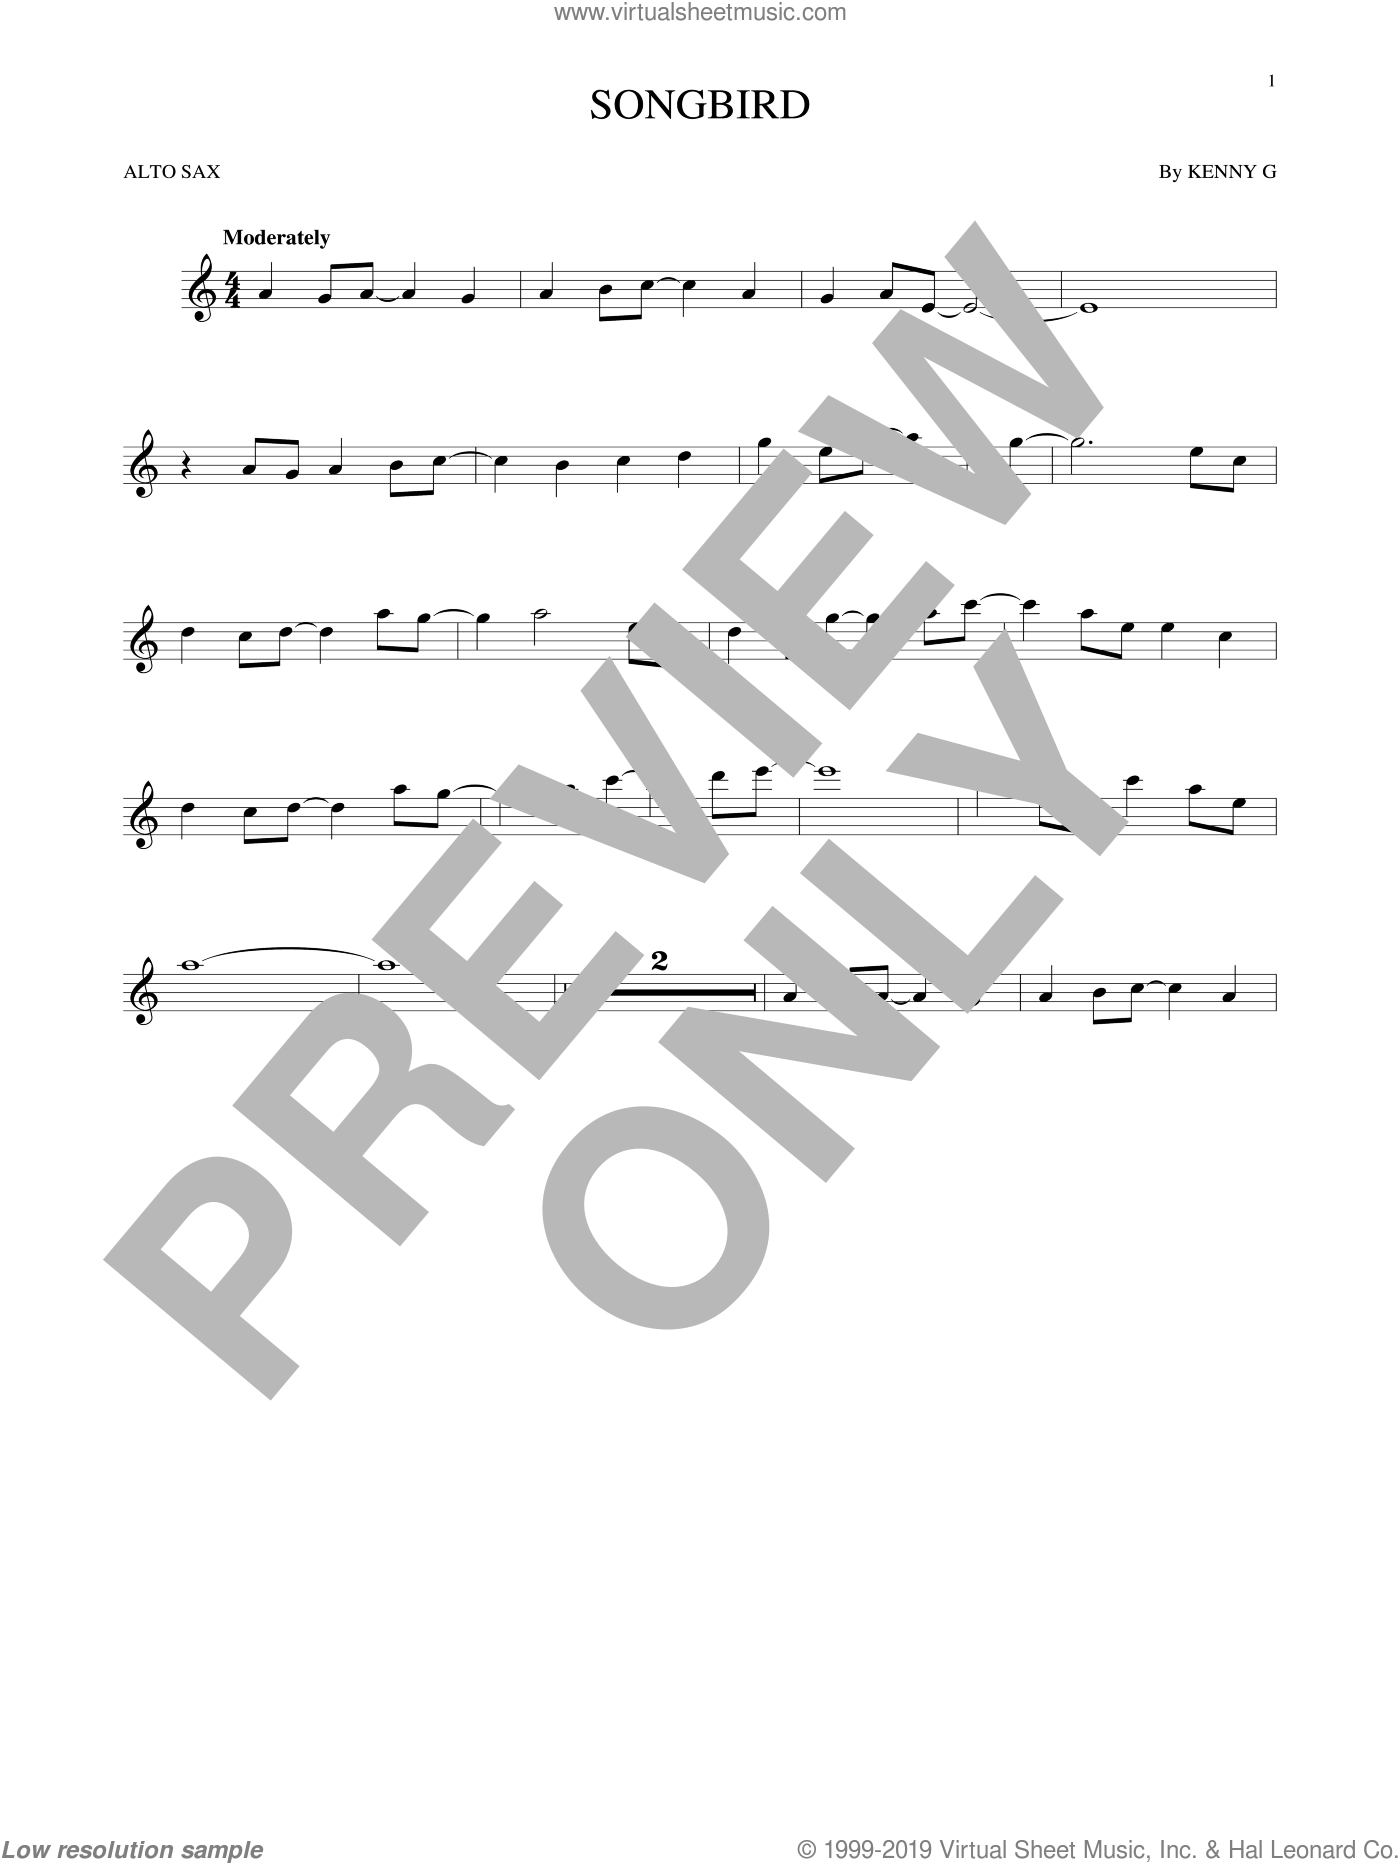 Songbird sheet music for alto saxophone solo by Kenny G, intermediate skill level